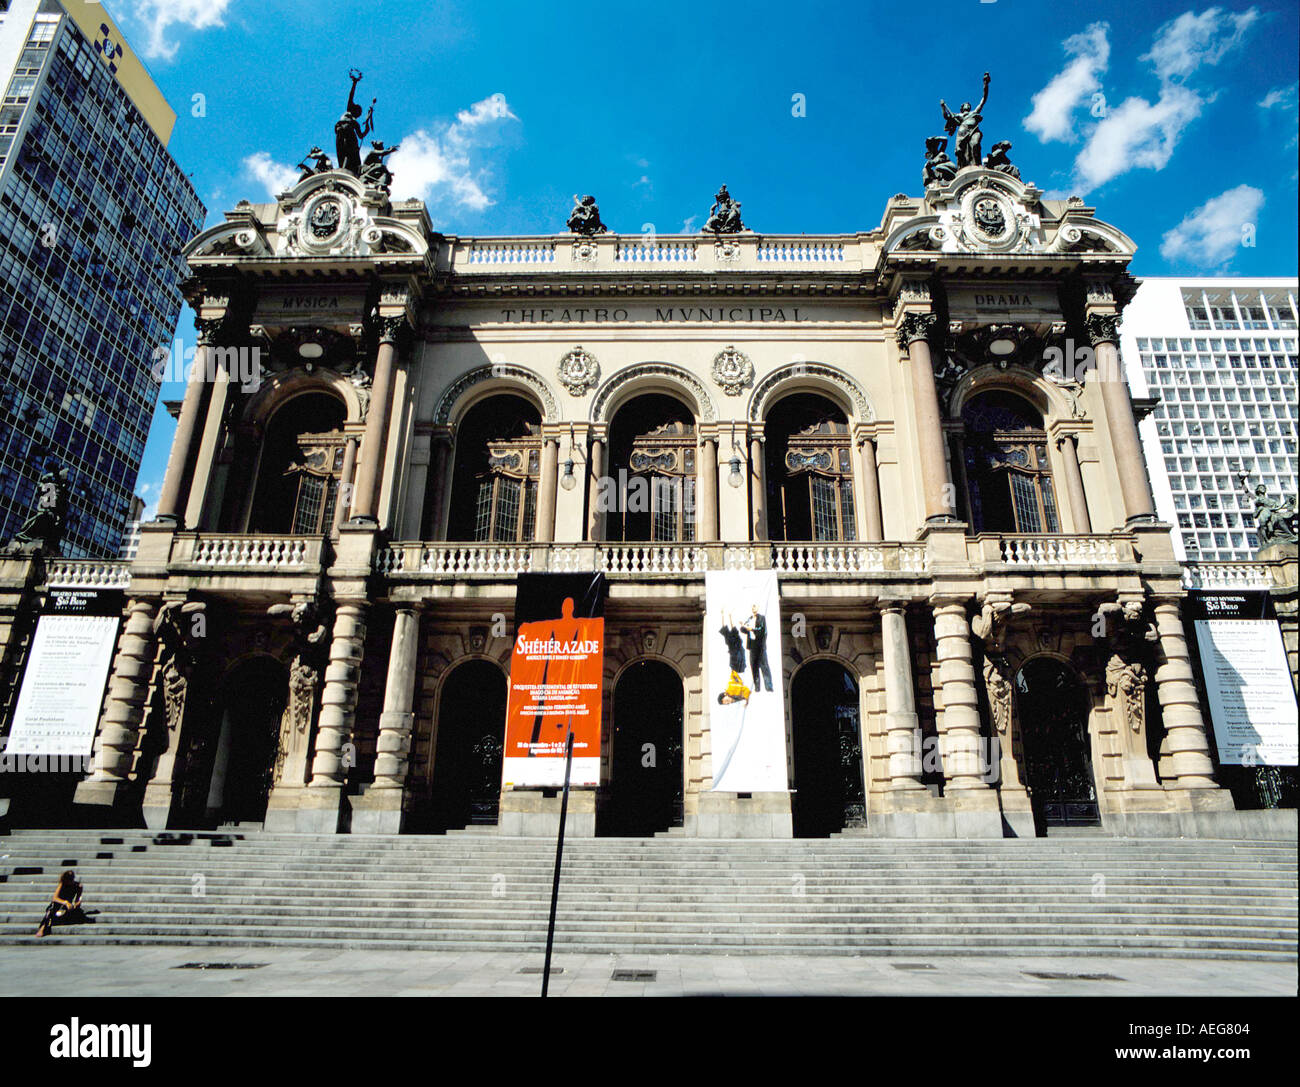 Travel Brasil sao paulo urban building buildings facades facade old downtown historical cultural heritage architecture education - Stock Image